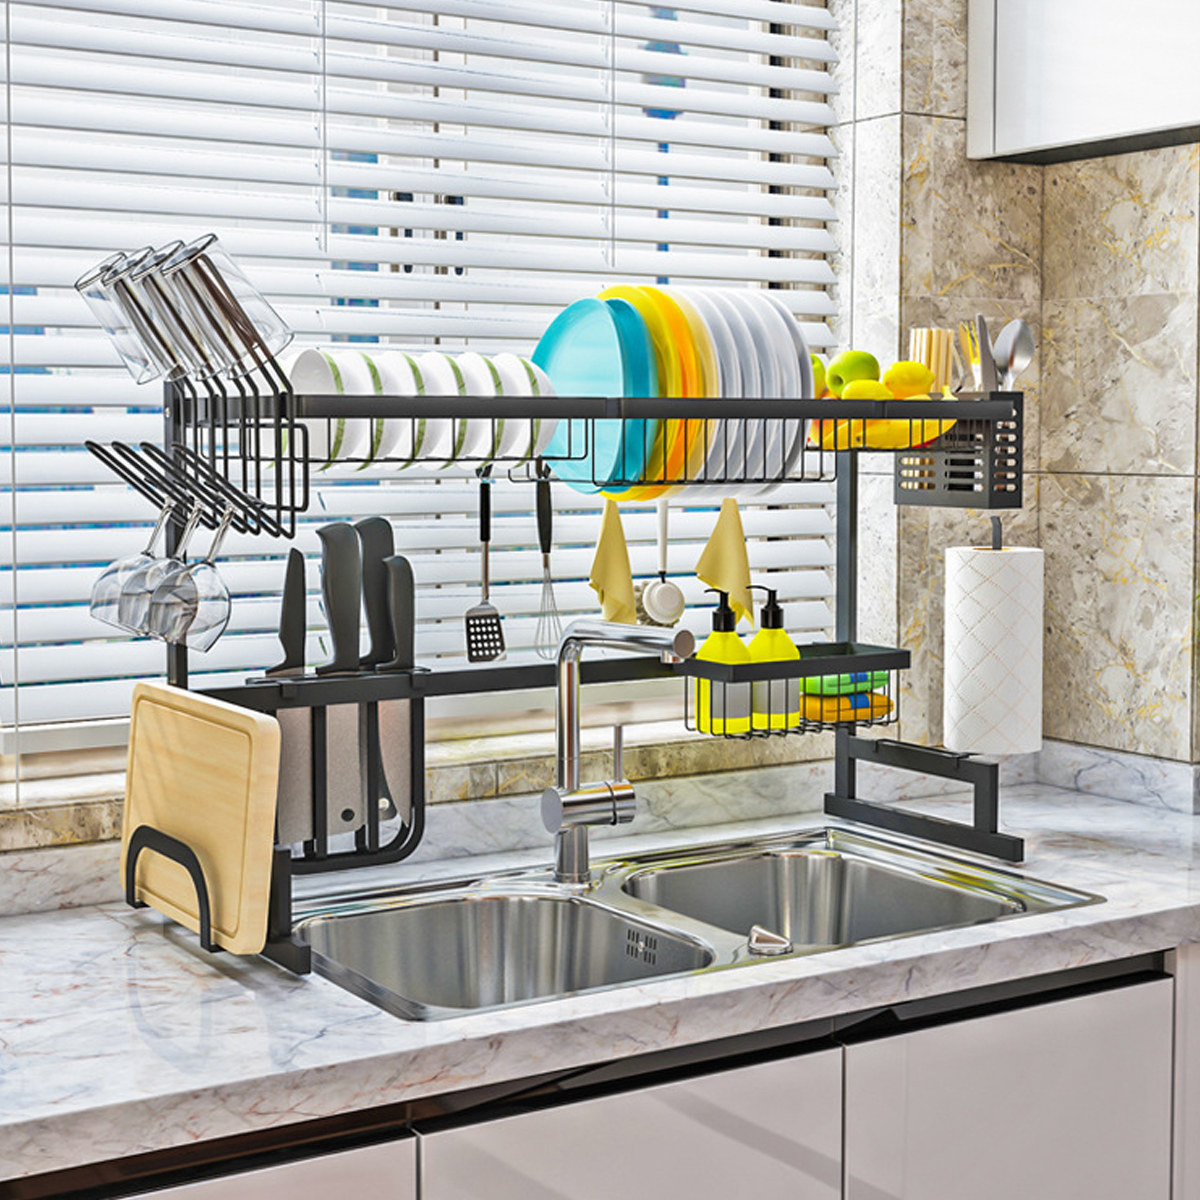 Product photo of over sink dish drying rack featuring plate and bowl rack, pegs for drying cups and hanging kitchen utensils, and a shelf for dish cleaning products